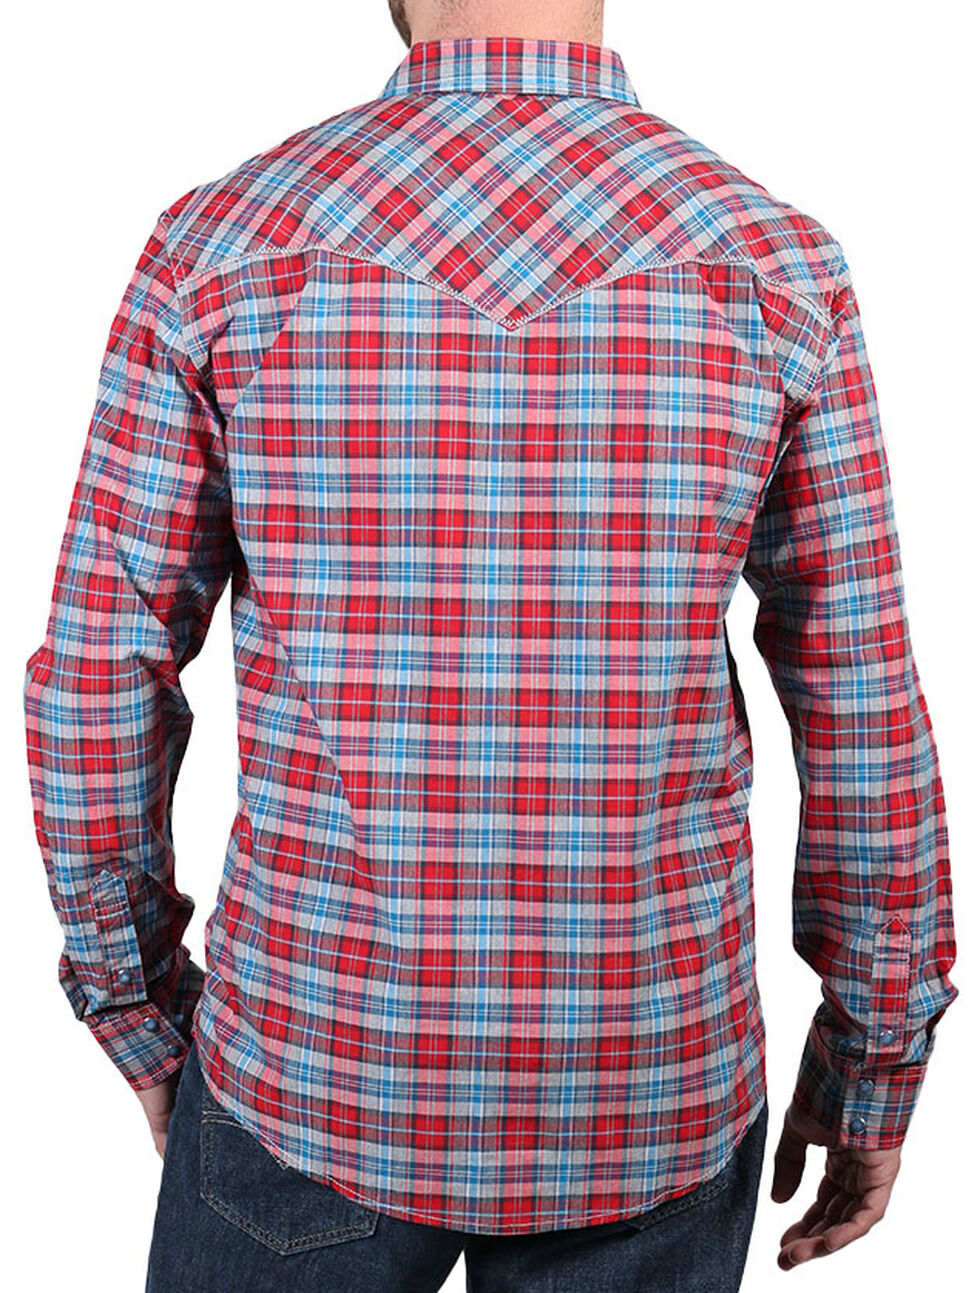 Cody James Men's Dodge City Plaid Long Sleeve Shirt, Red, hi-res